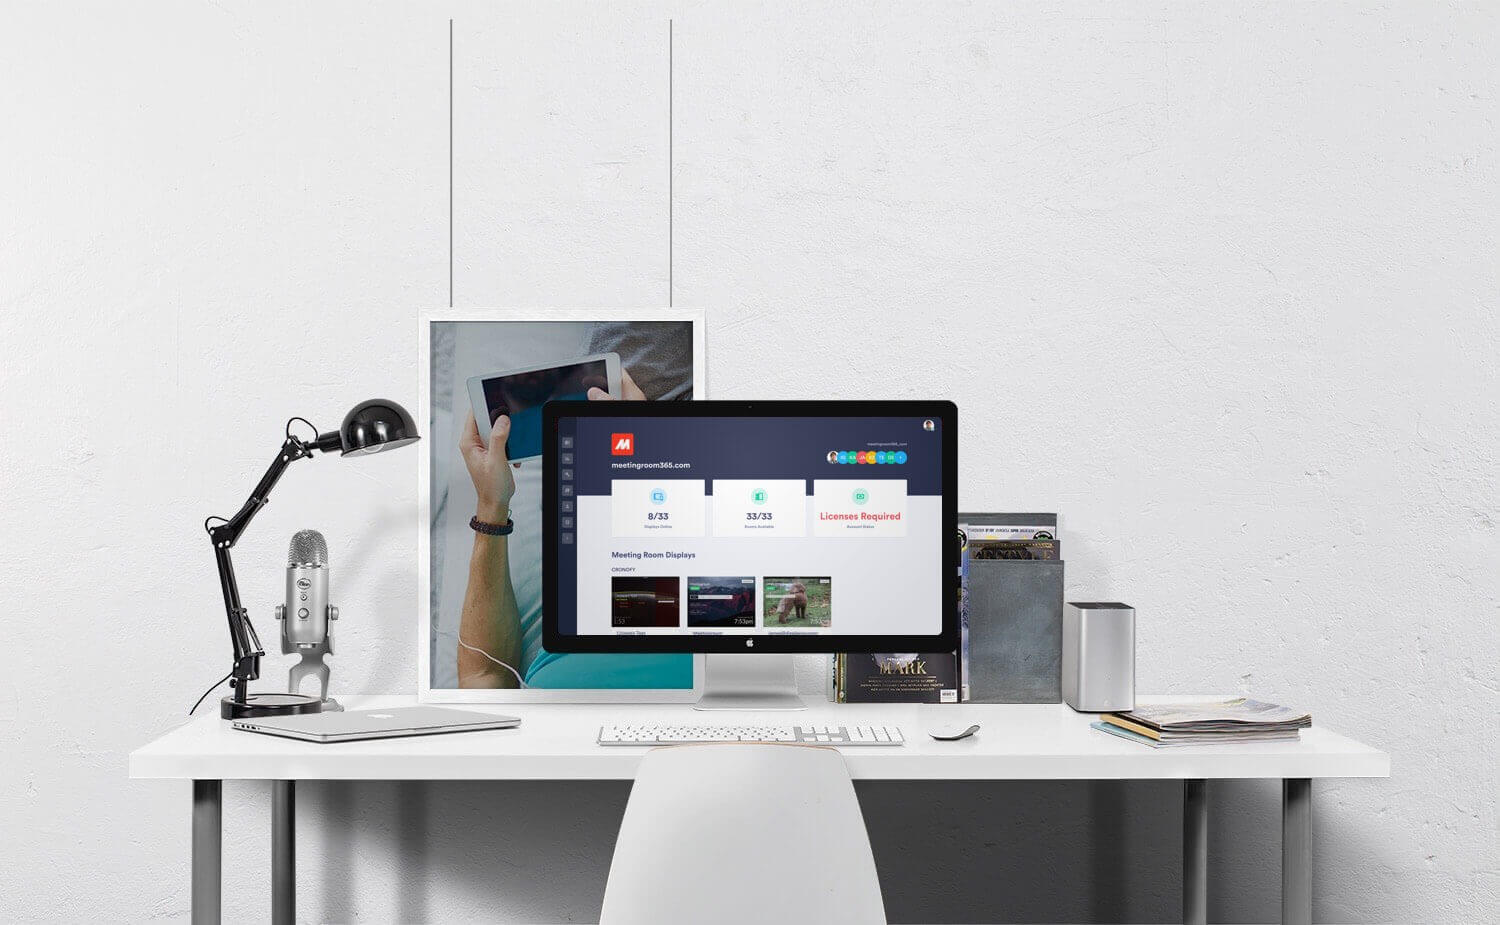 Meeting Room Display software for Office 365, Microsoft